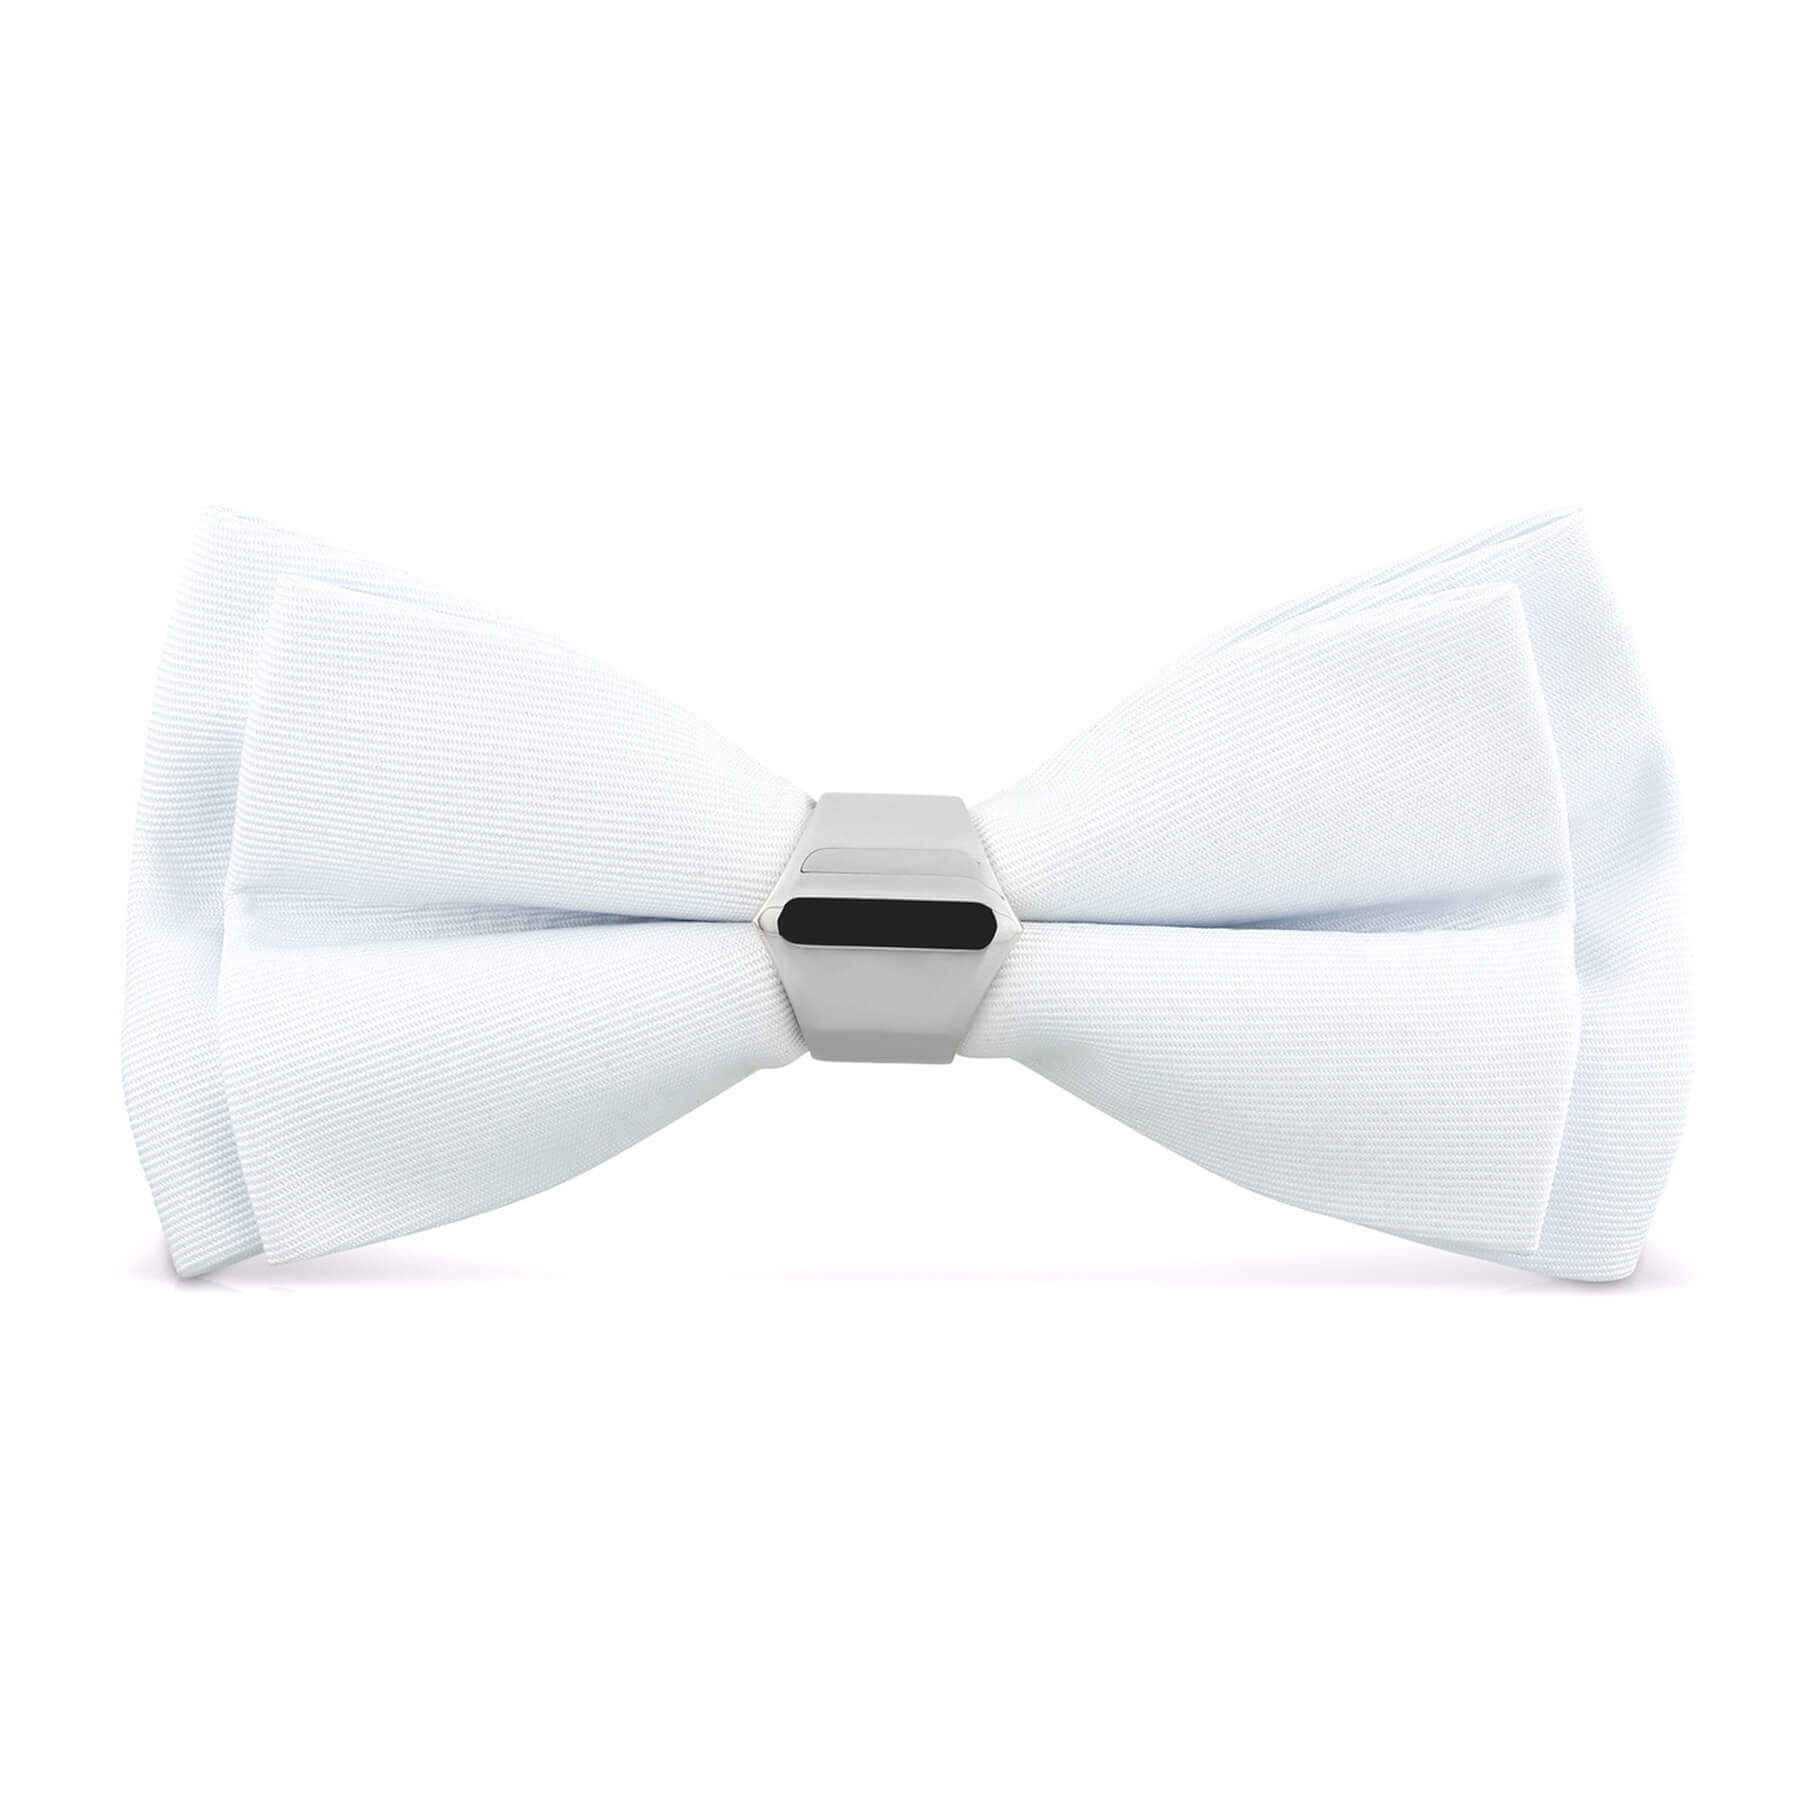 b5a66be1eae6 Men's Bow Tie | Elegant Black Bow Ties | Hextie – HEX TIE